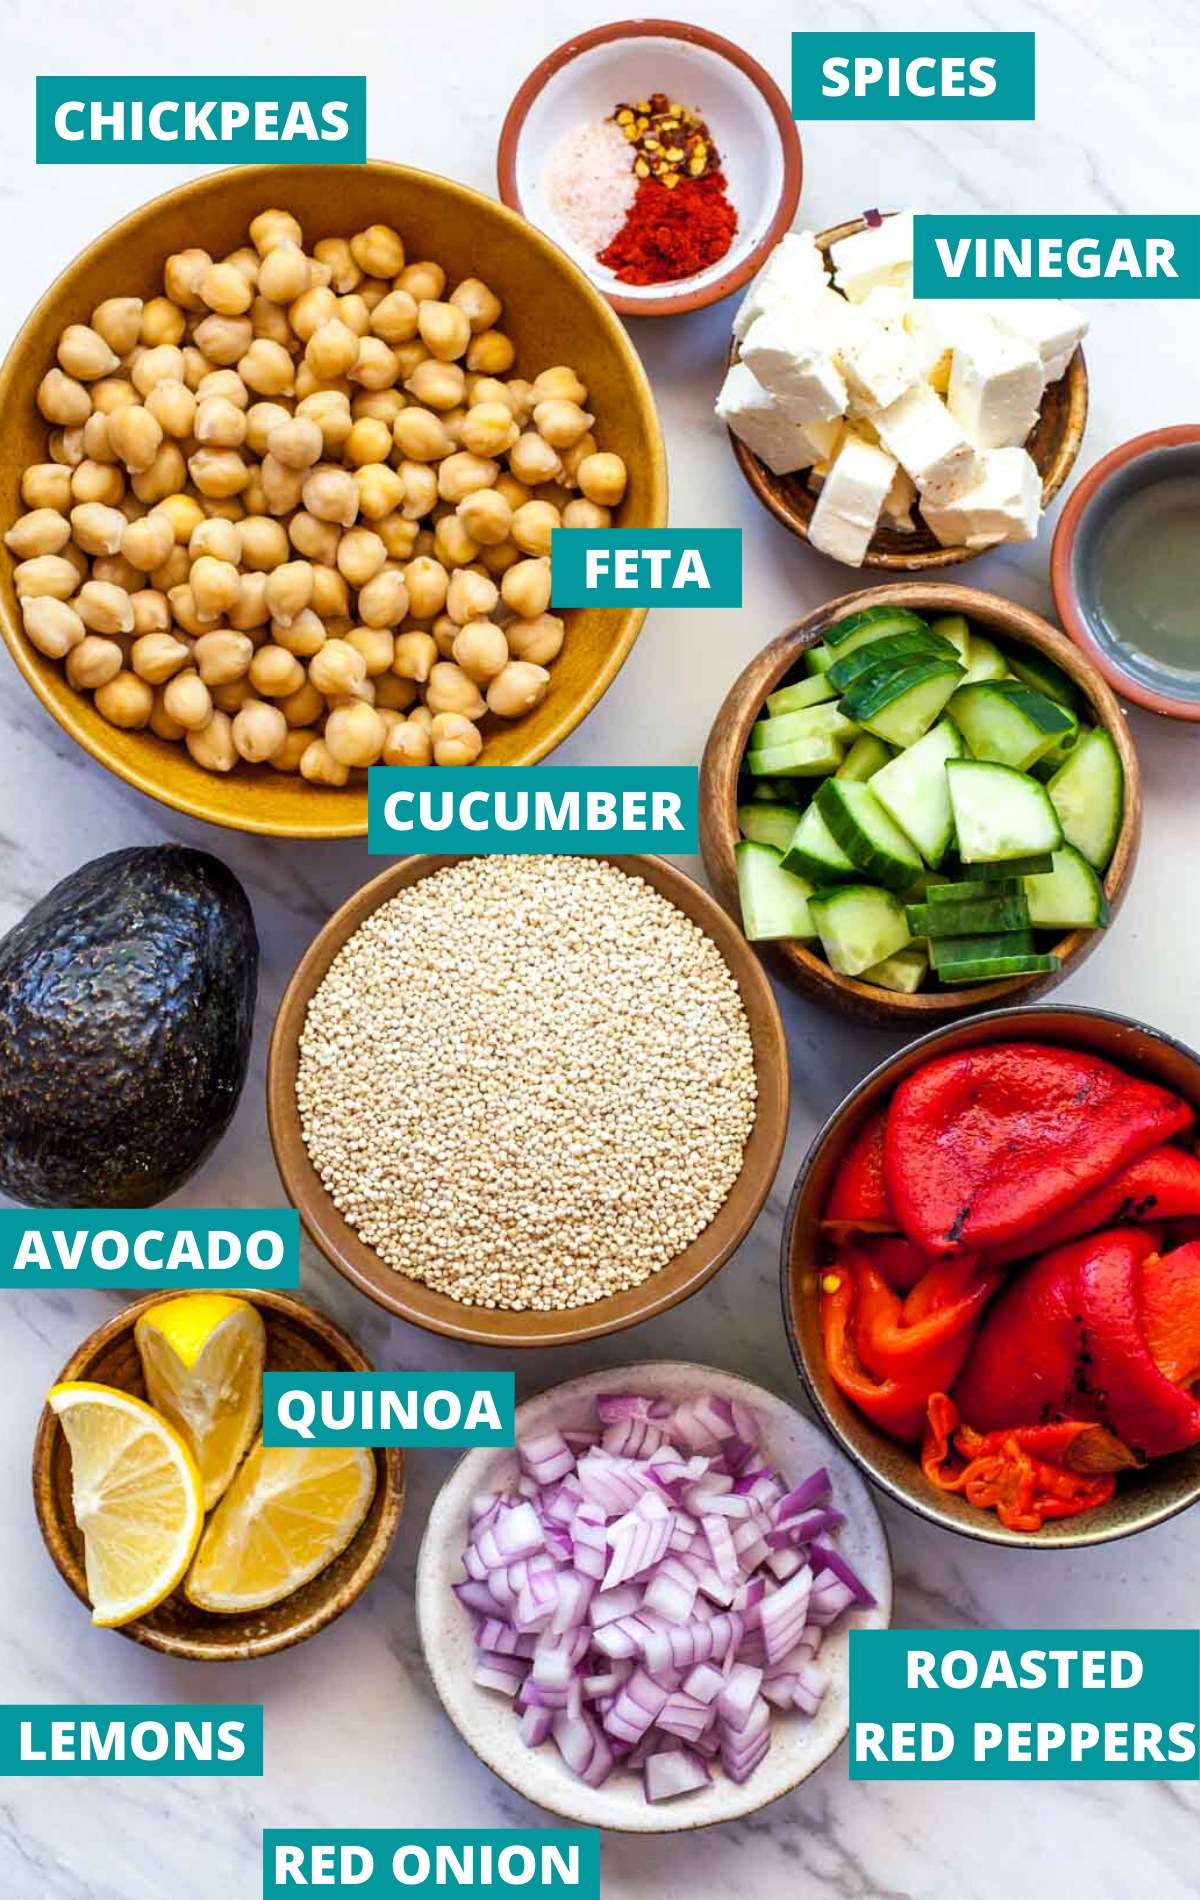 Quinoa, chickpeas, cucumber, red onion, red peppers, and spices in separate bowls with ingredient labels